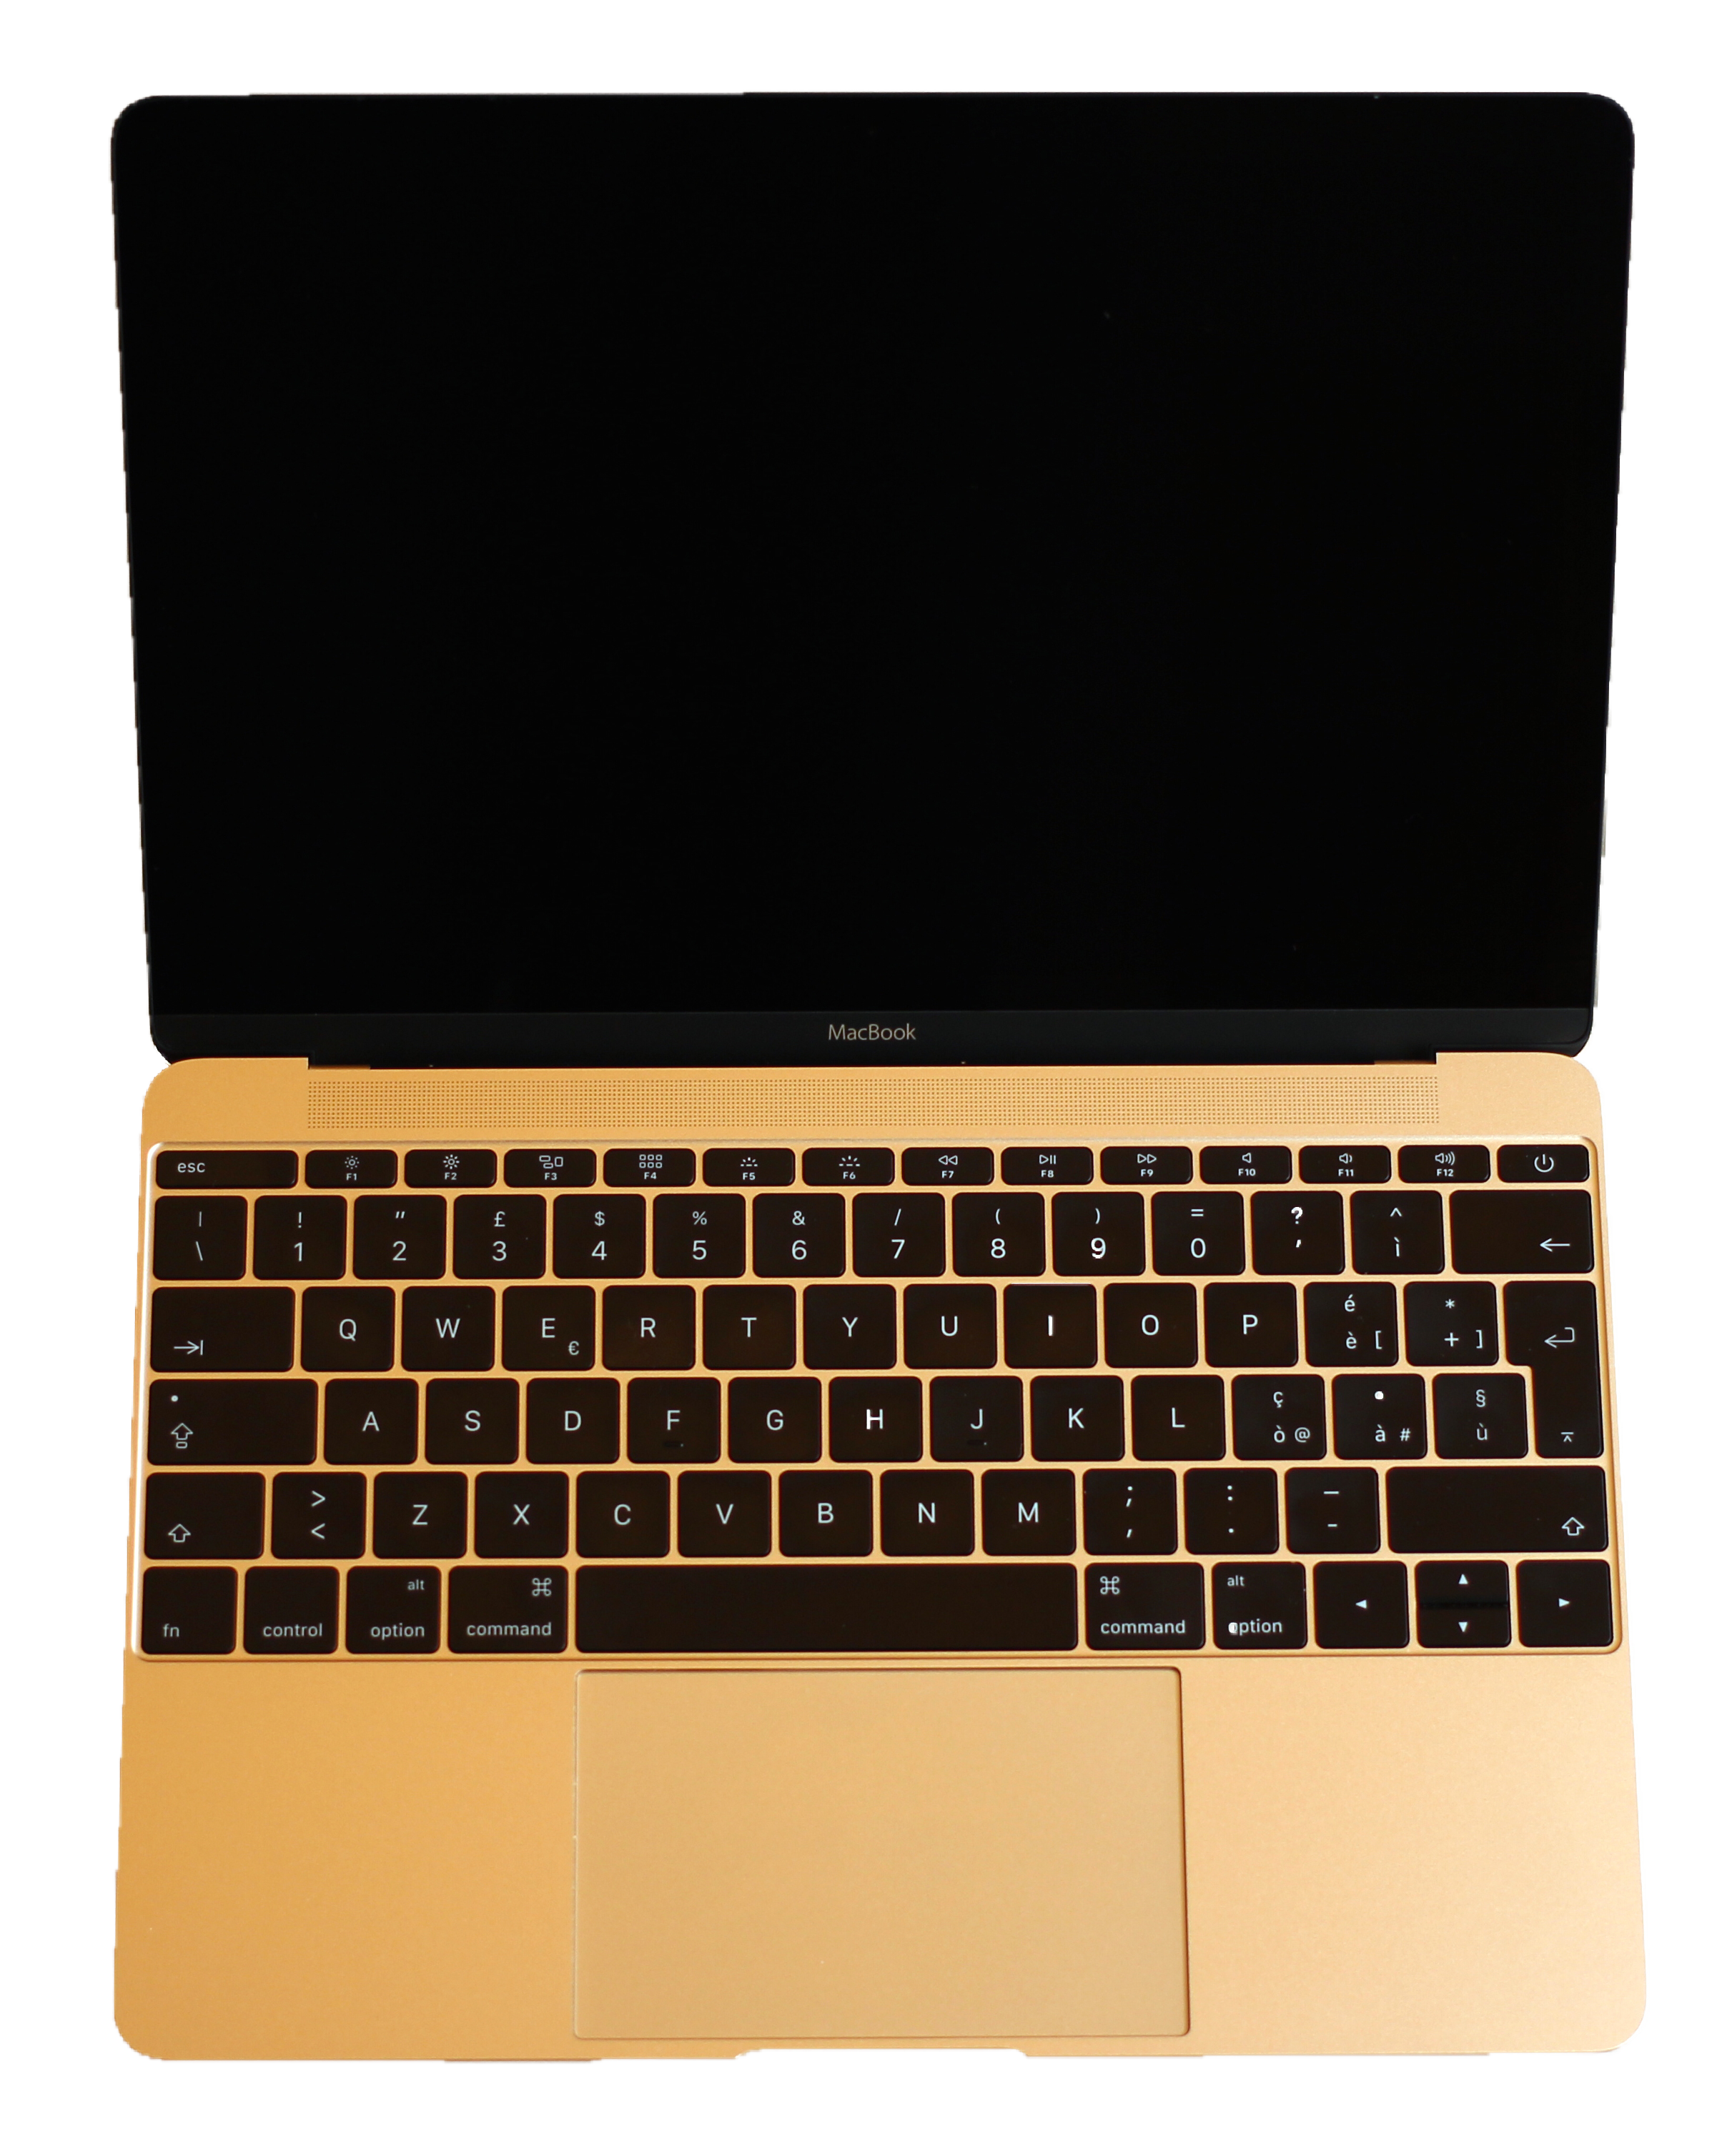 Keyboard clipart macbook keyboard. Png images free download